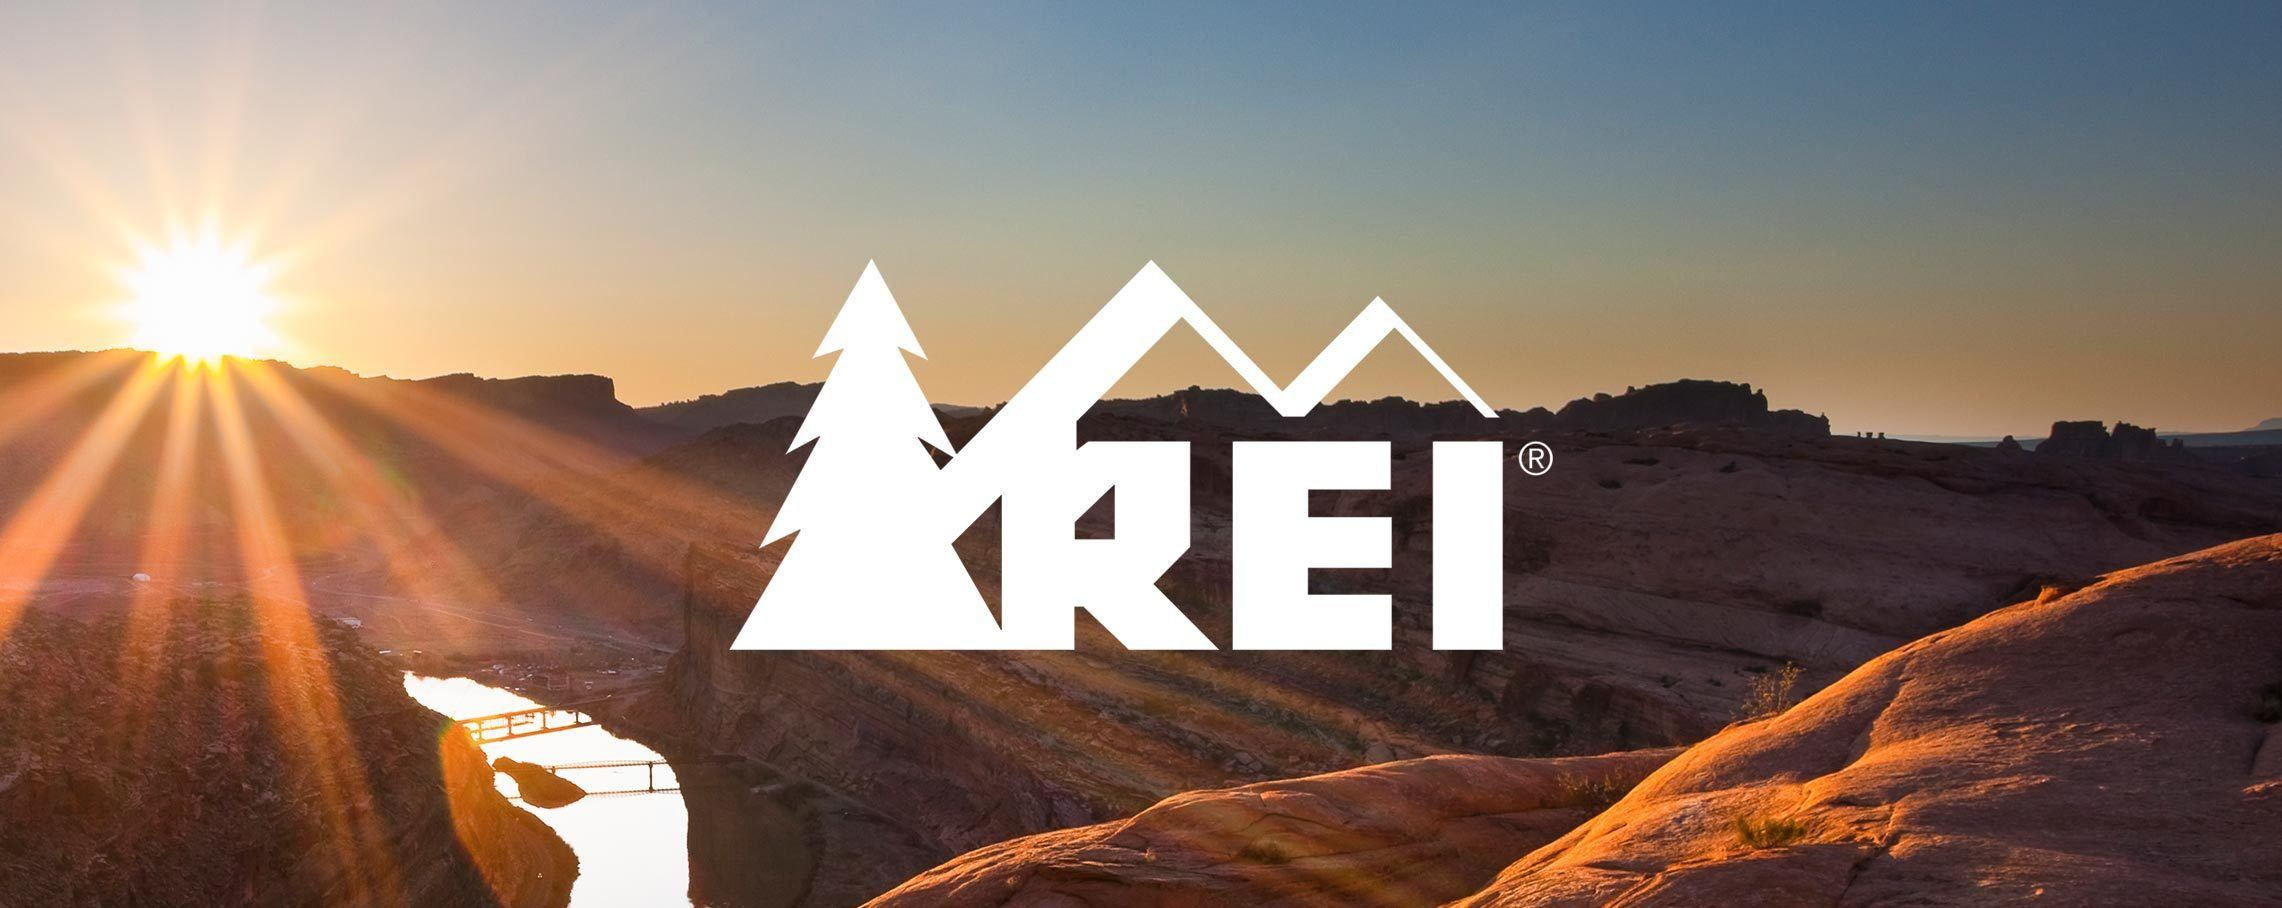 REI Brand review